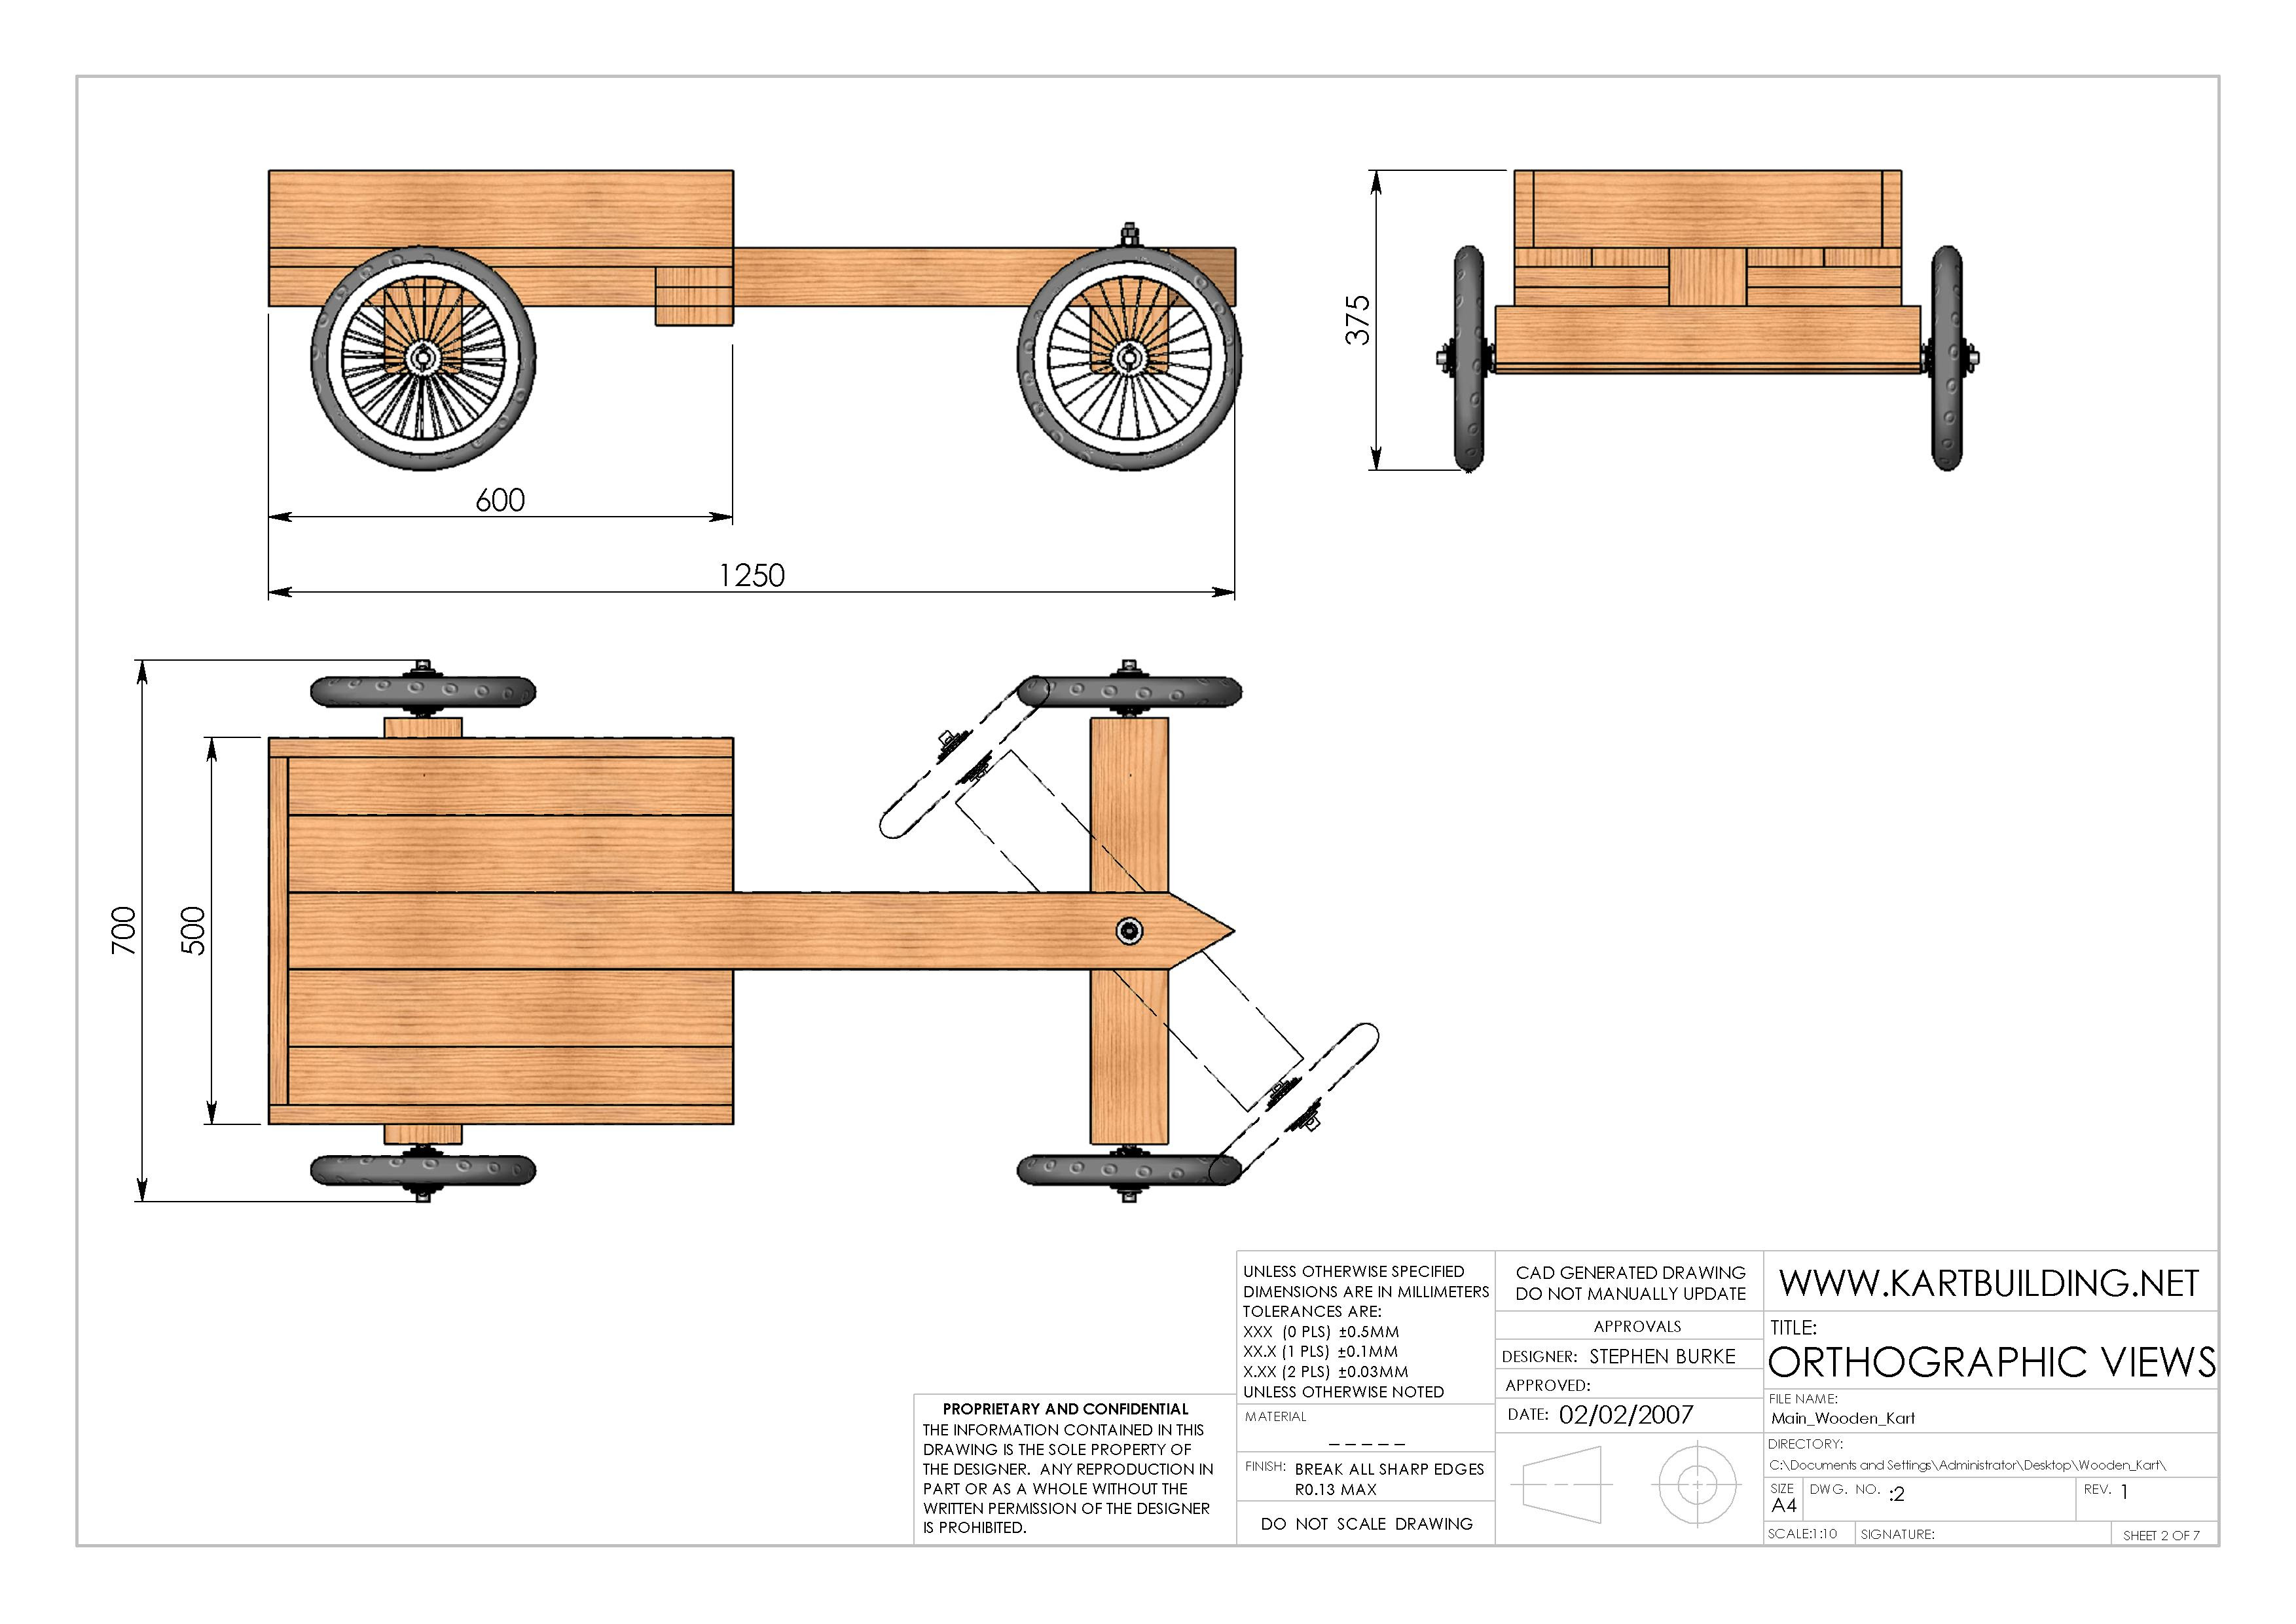 creat wood working: more wooden riding toy plans